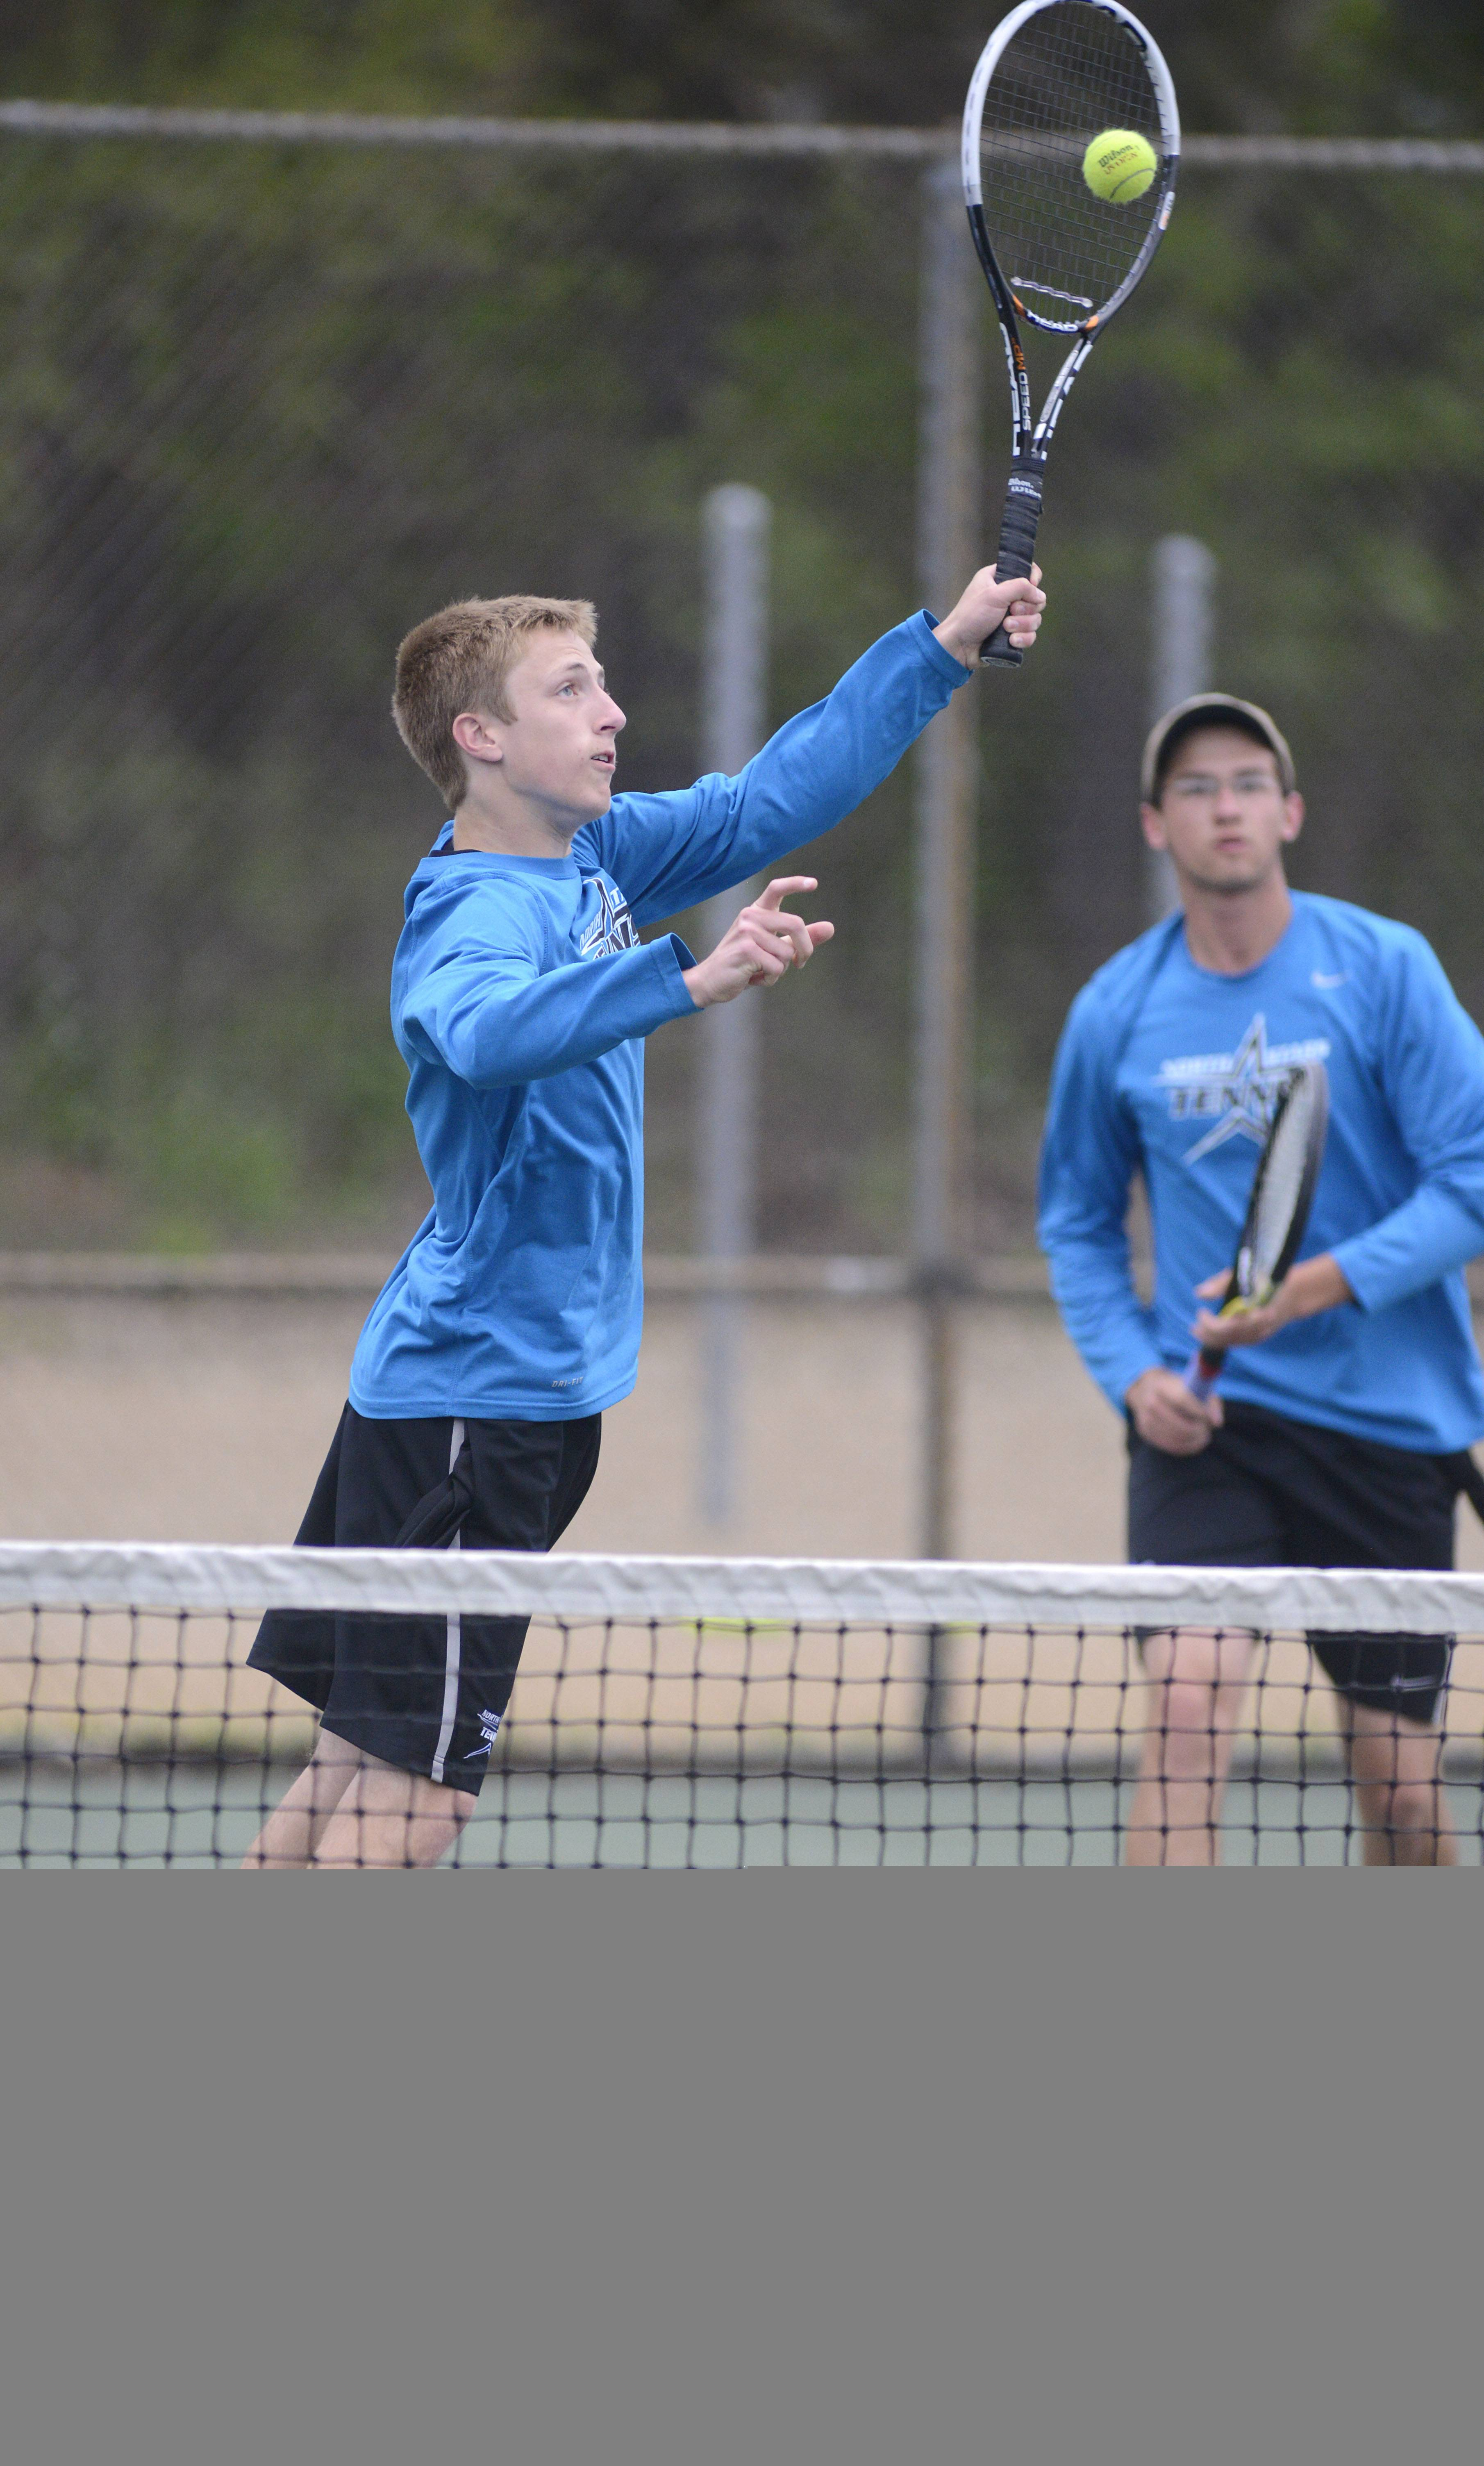 Laura Stoecker/lstoecker@dailyherald.com ¬ St. Charles North's Keith Hedges returns a hit from Batavia in the first place, first doubles match with teammate Grant Spellman in the Upstate Eight Conference at Elgin High School on Saturday, May 11.